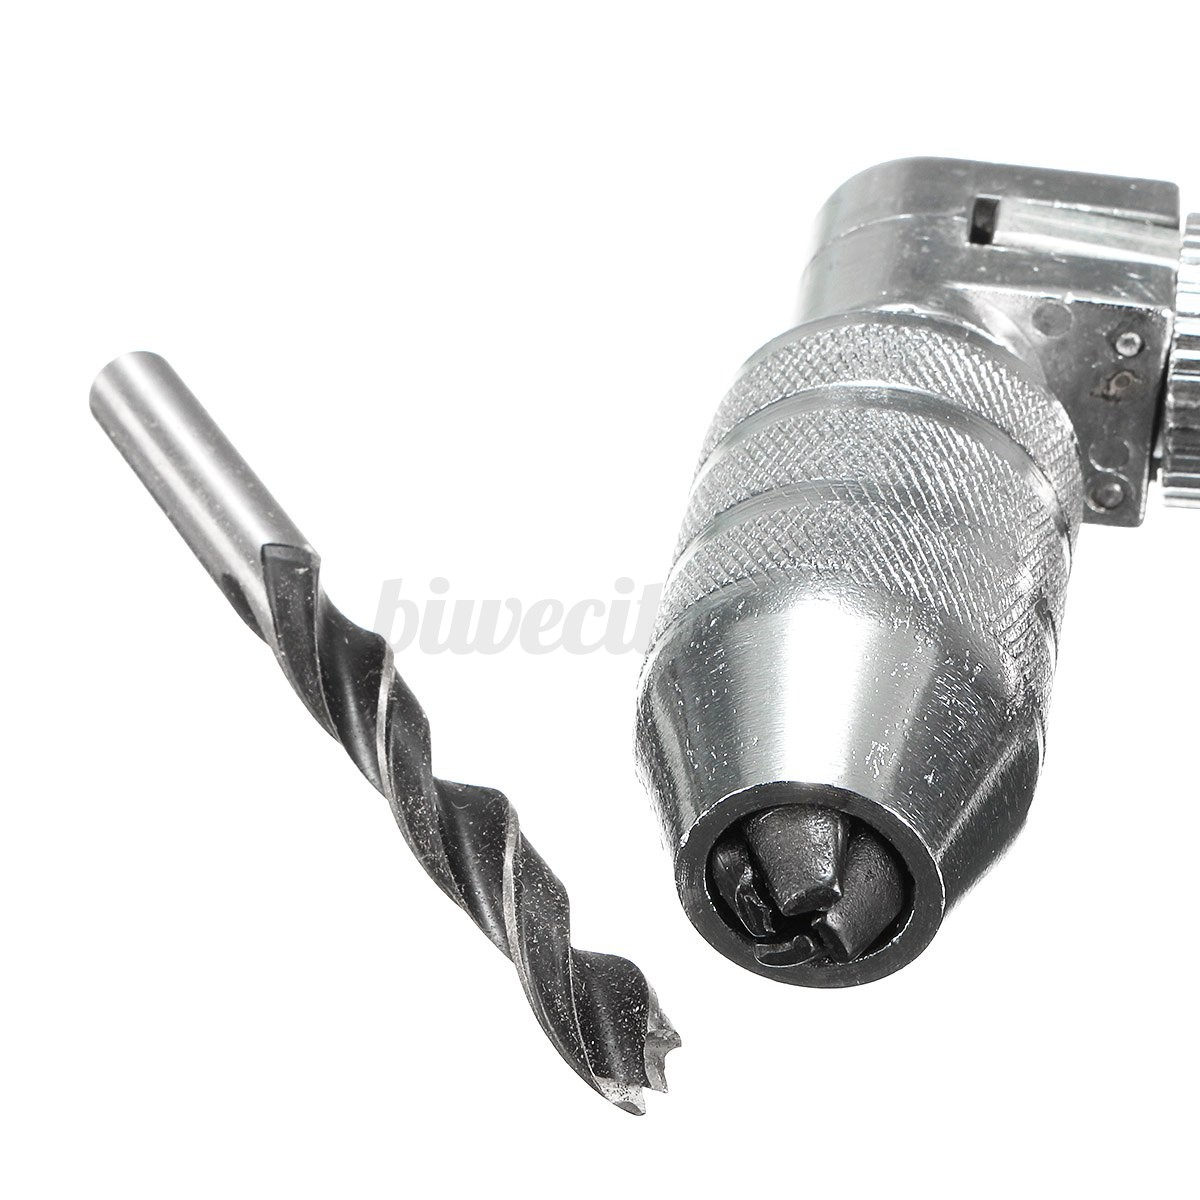 Claw Bow Drill Brace Jaw Chuck Woodworking Boring Hand